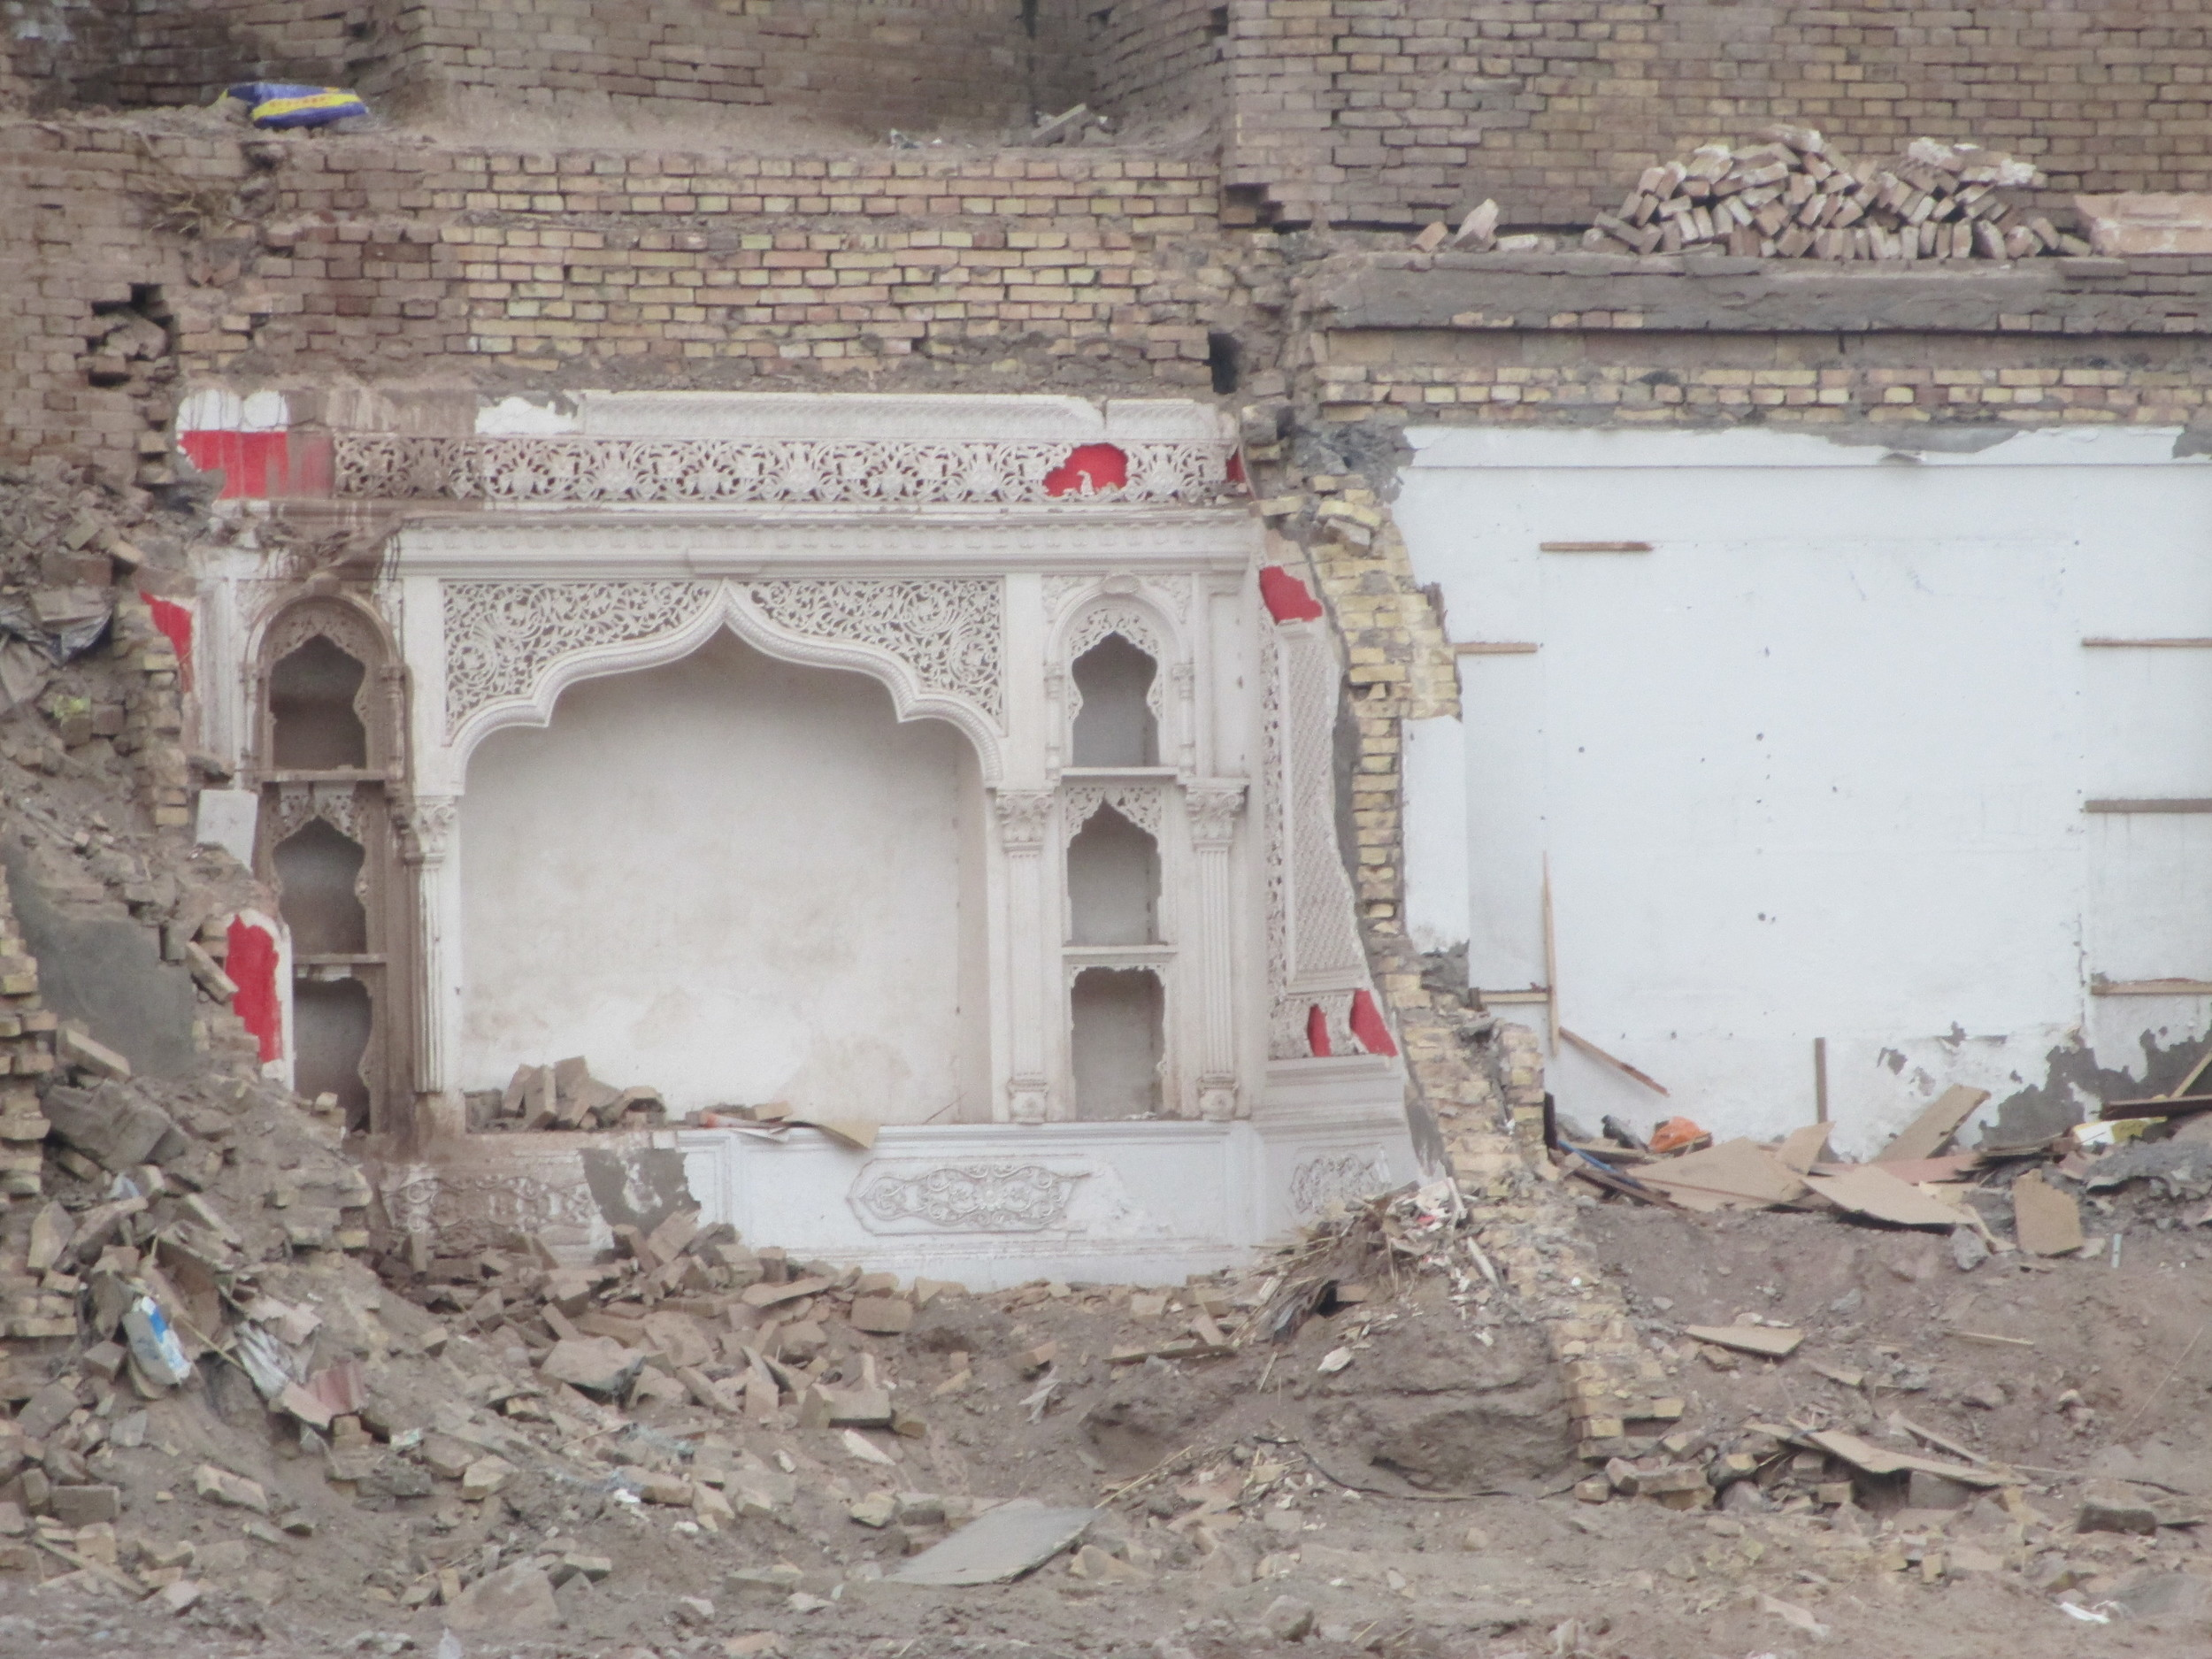 The entire old city of Kashgar is been bulldozed , here is the intricate interior of a house that is being destroyed